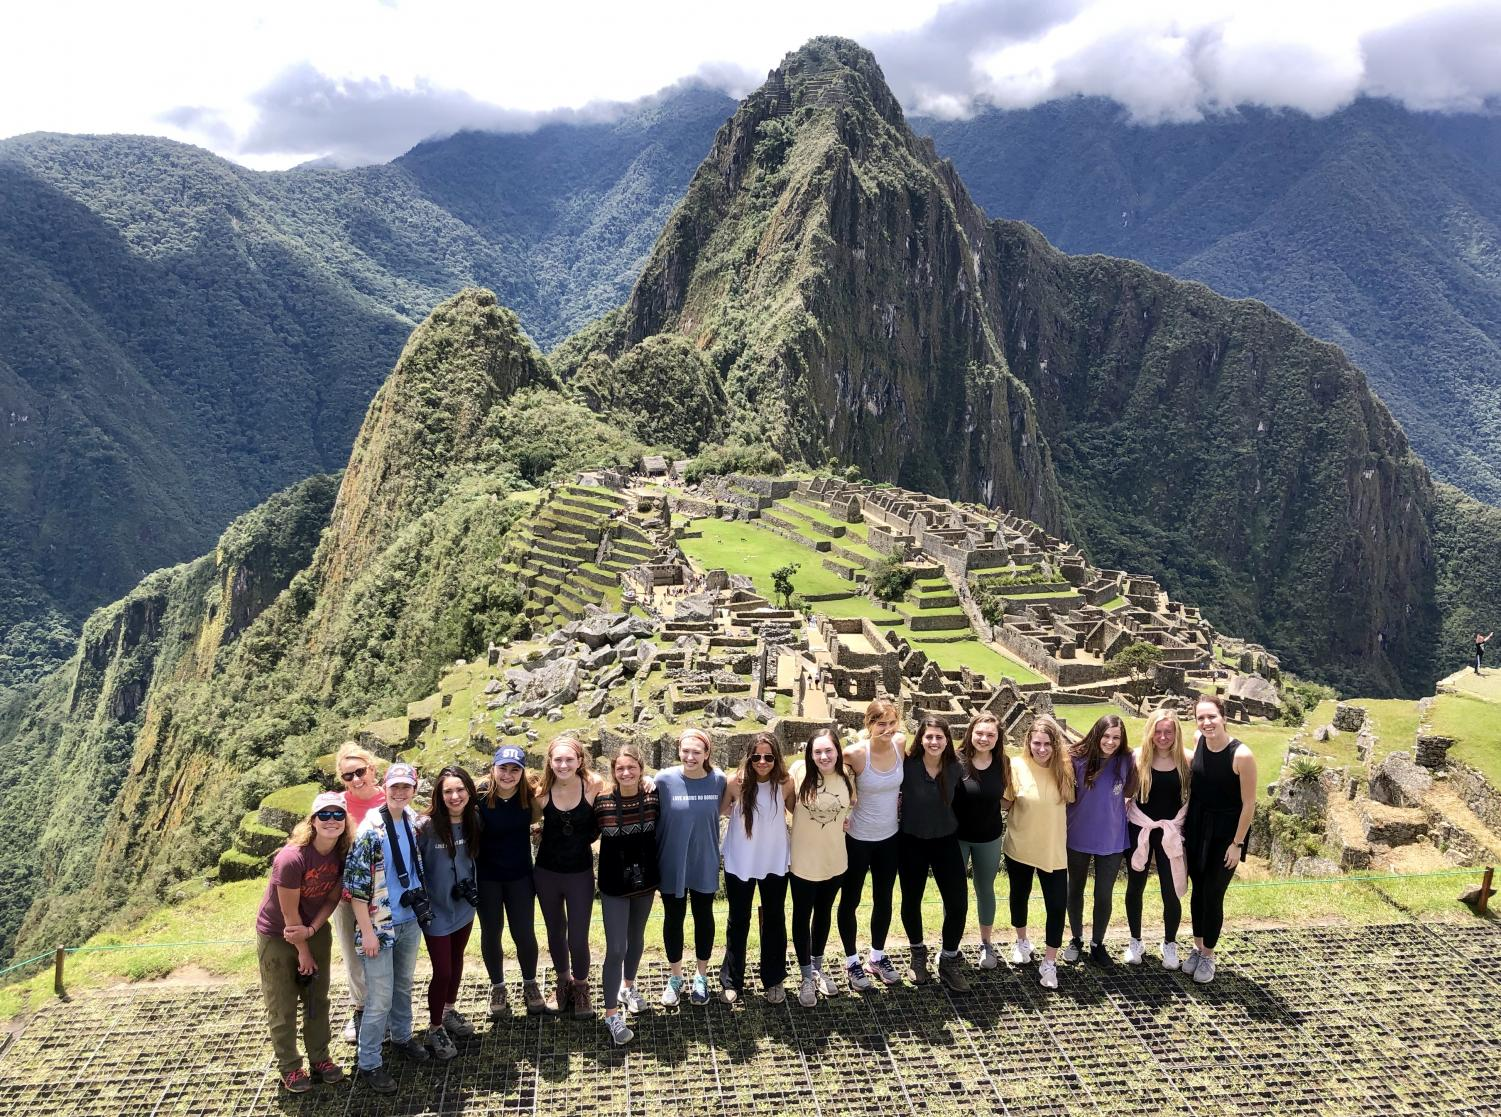 The angels after climbing up Machu Picchu!